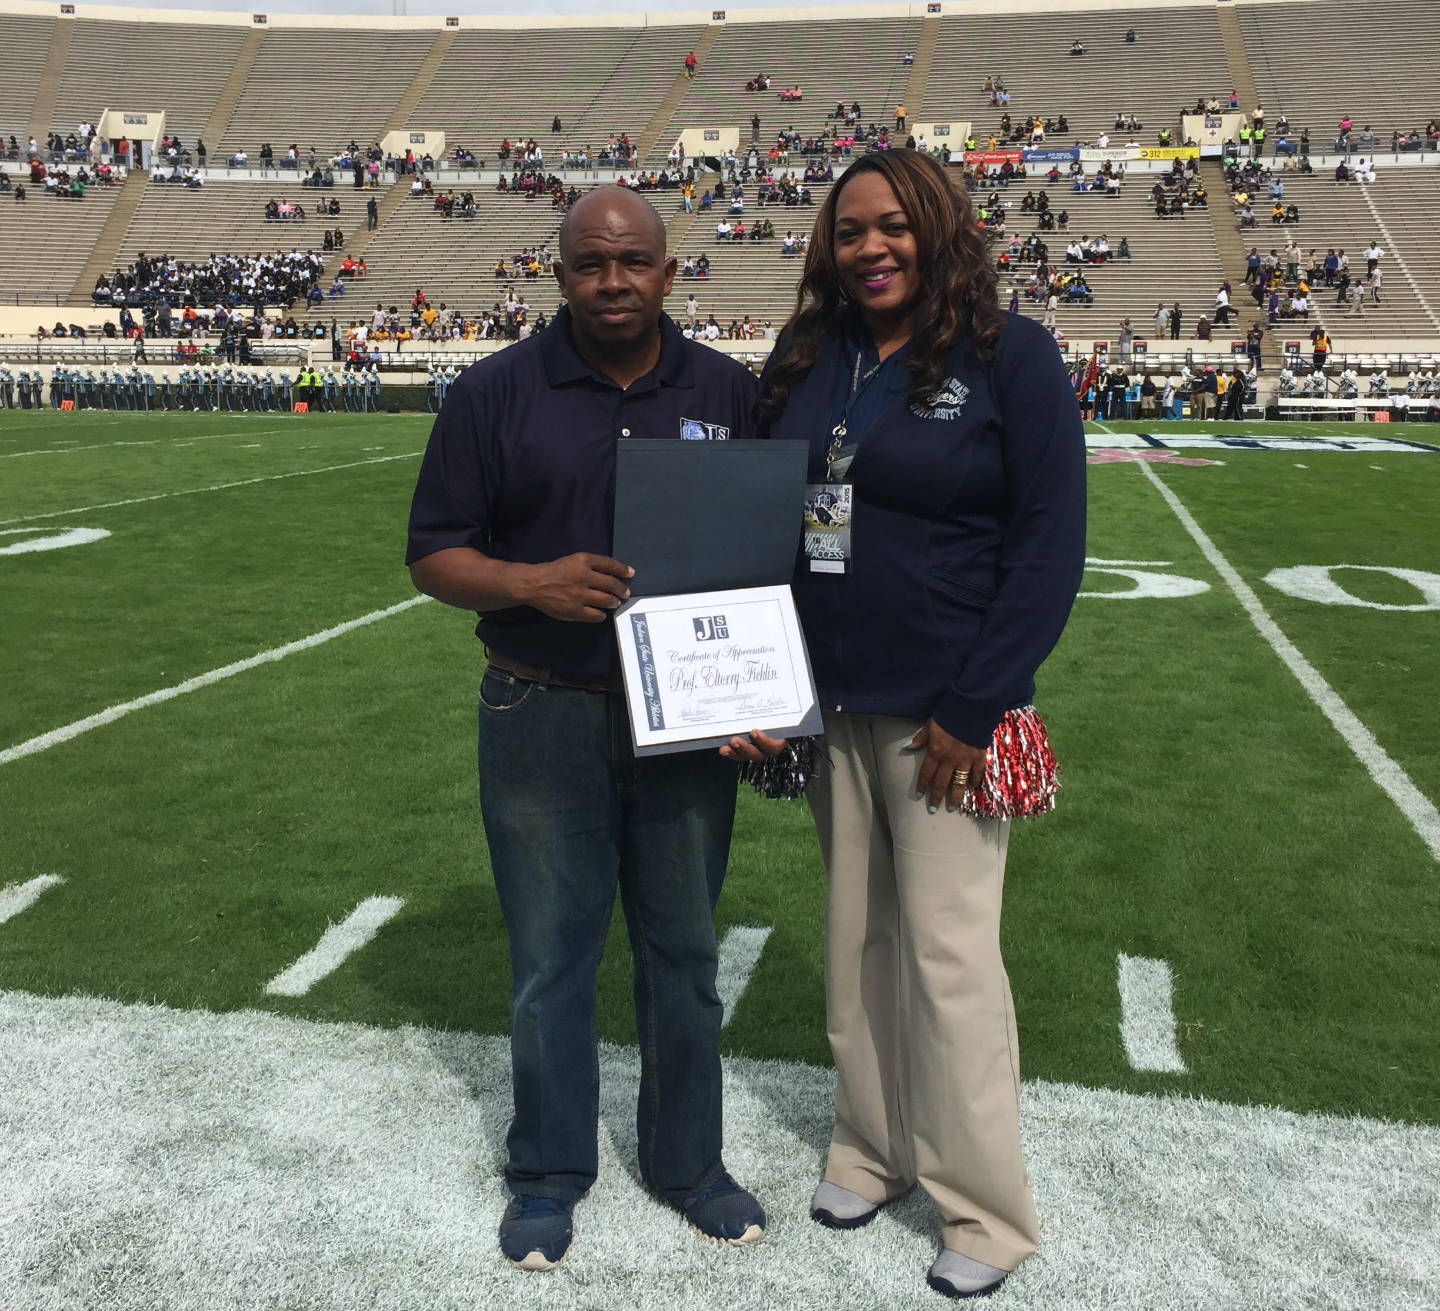 Professor of the Game - 10/24/15